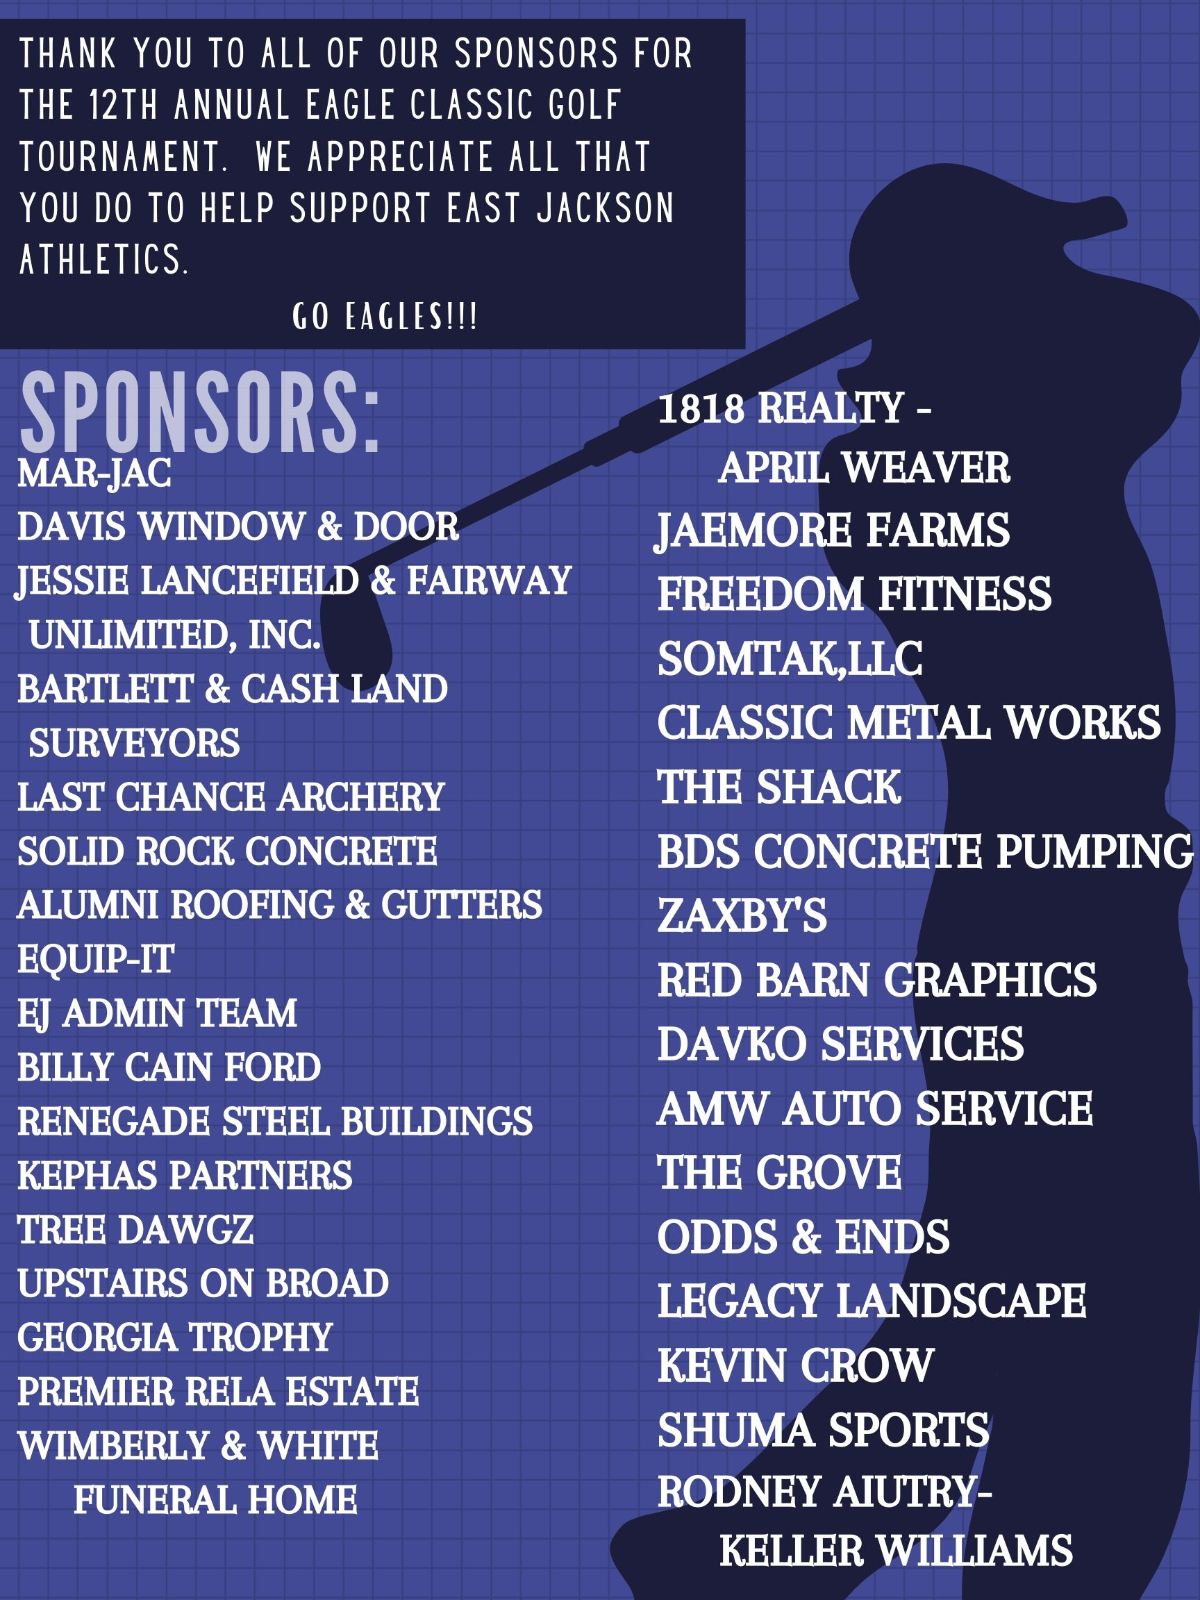 Thank you to our 2020 Eagle Classic Sponsors!